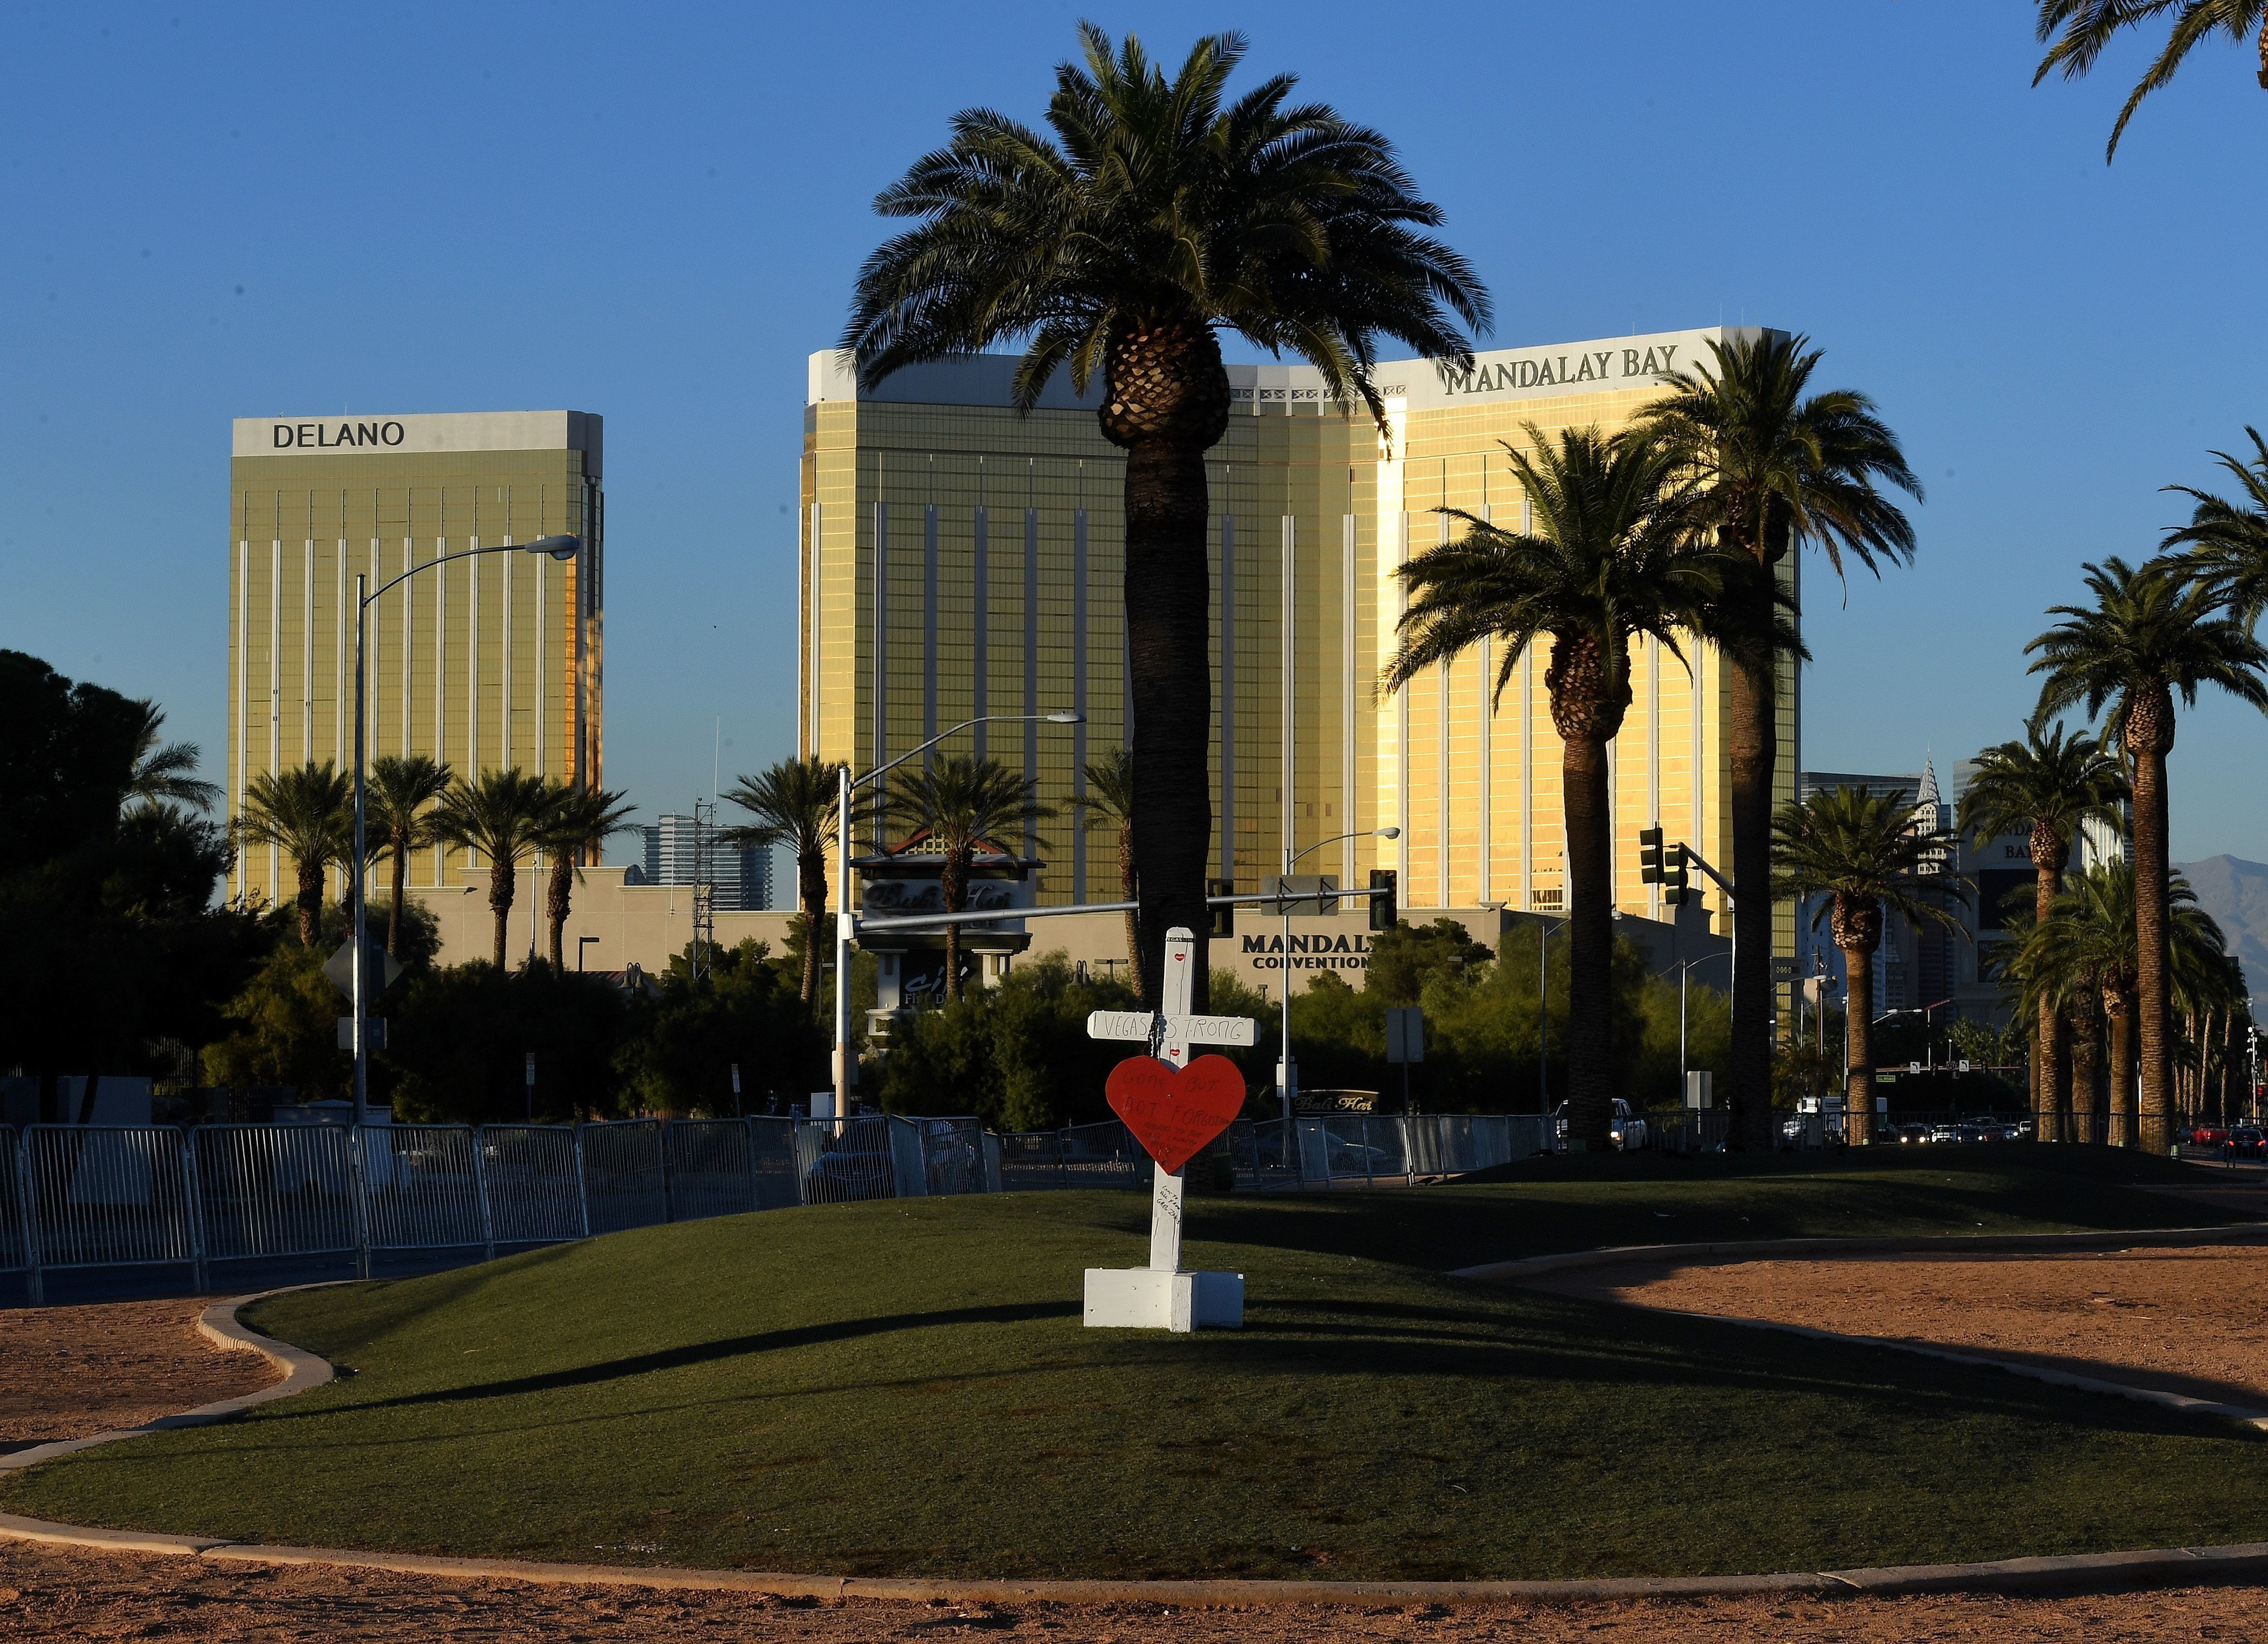 A solitary cross remains at a memorial site in front of the Mandalay Hotel (back) for the 58 victims of the worst shooting in US history, in Las Vegas, Nevada on November 15, 2017. The other 57 crosses have been moved from the iconic 'Welcome to Las Vegas' sign location to the Clark County museum. The US has been hit by a wave of other mass shootings since the October 1st Las vegas massacre. / AFP PHOTO / Mark RALSTON        (Photo credit should read MARK RALSTON/AFP/Getty Images)